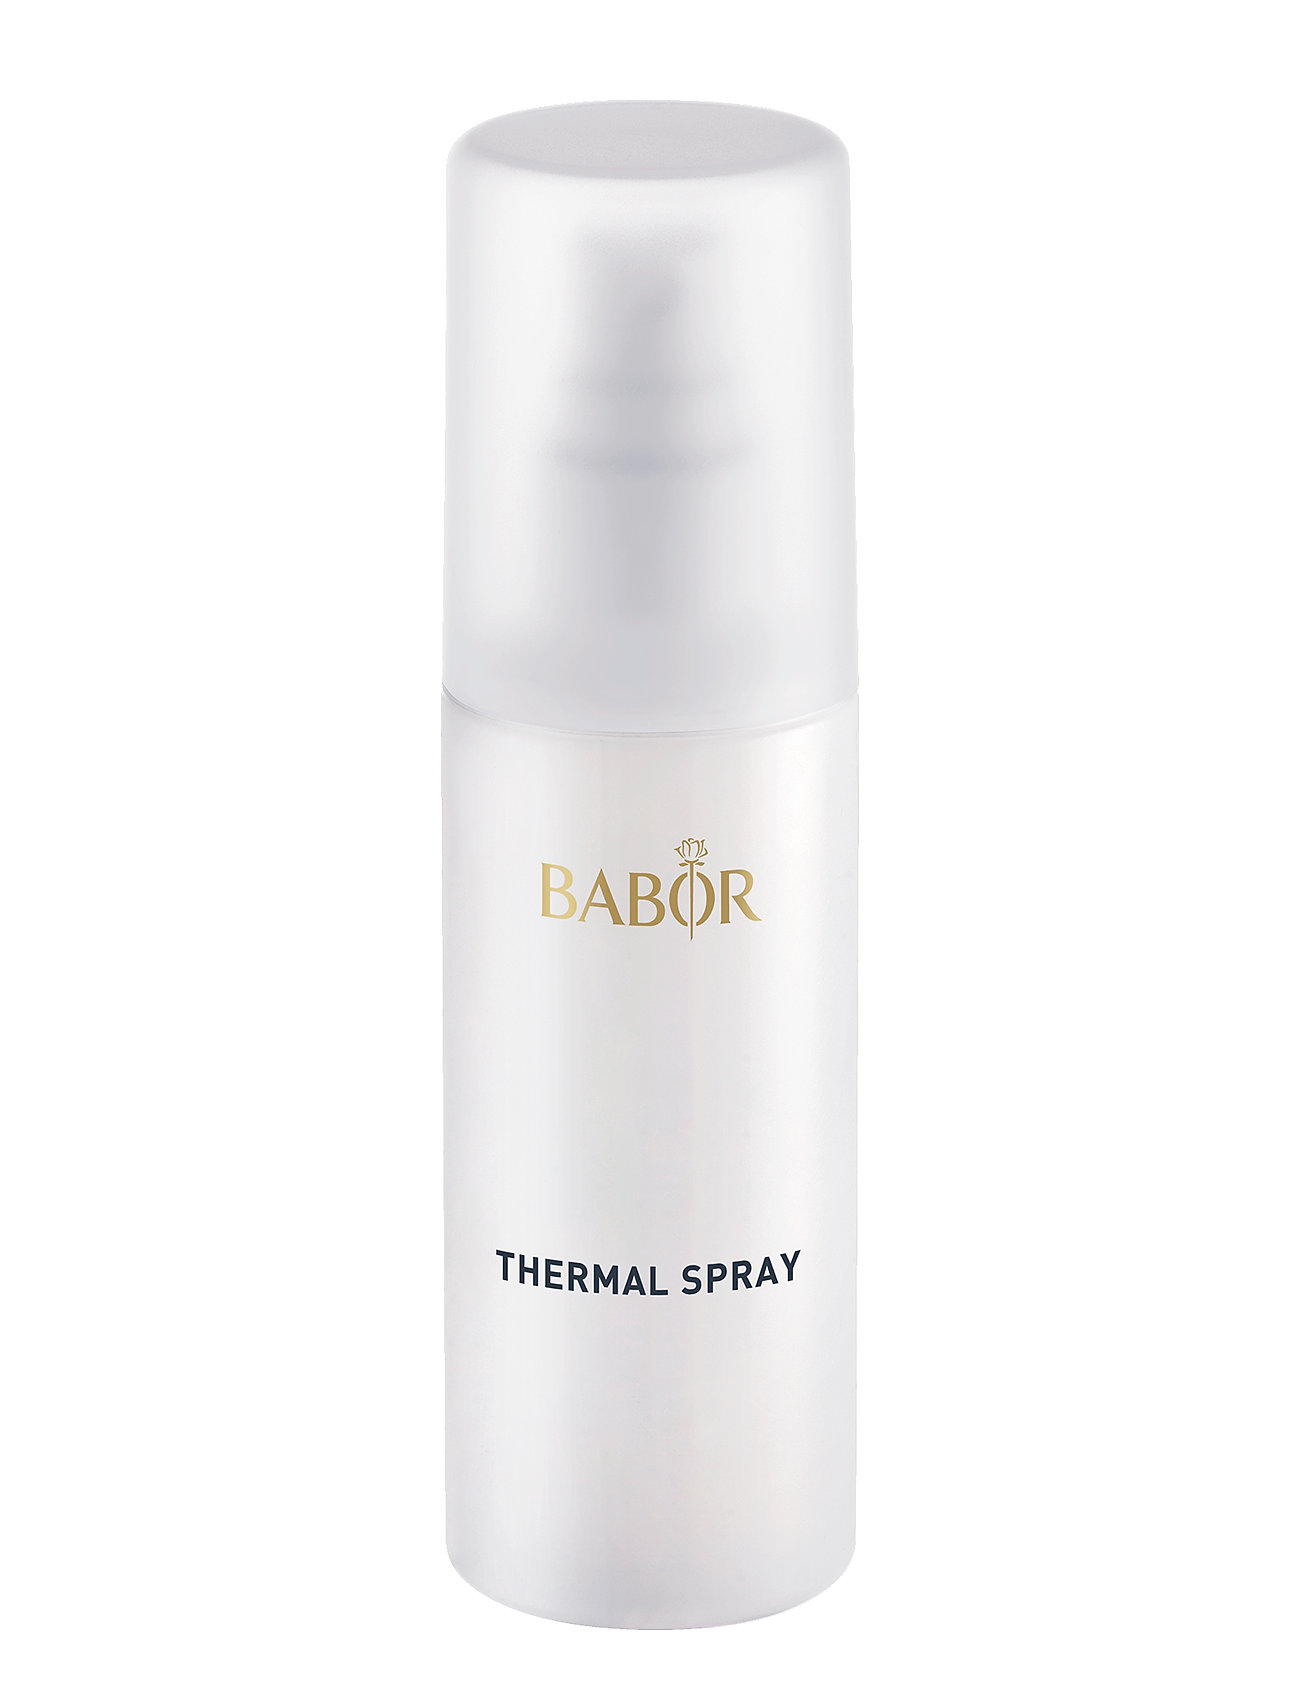 Image of Thermal Spray Beauty WOMEN Skin Care Face Face Mist Nude Babor (3217760743)